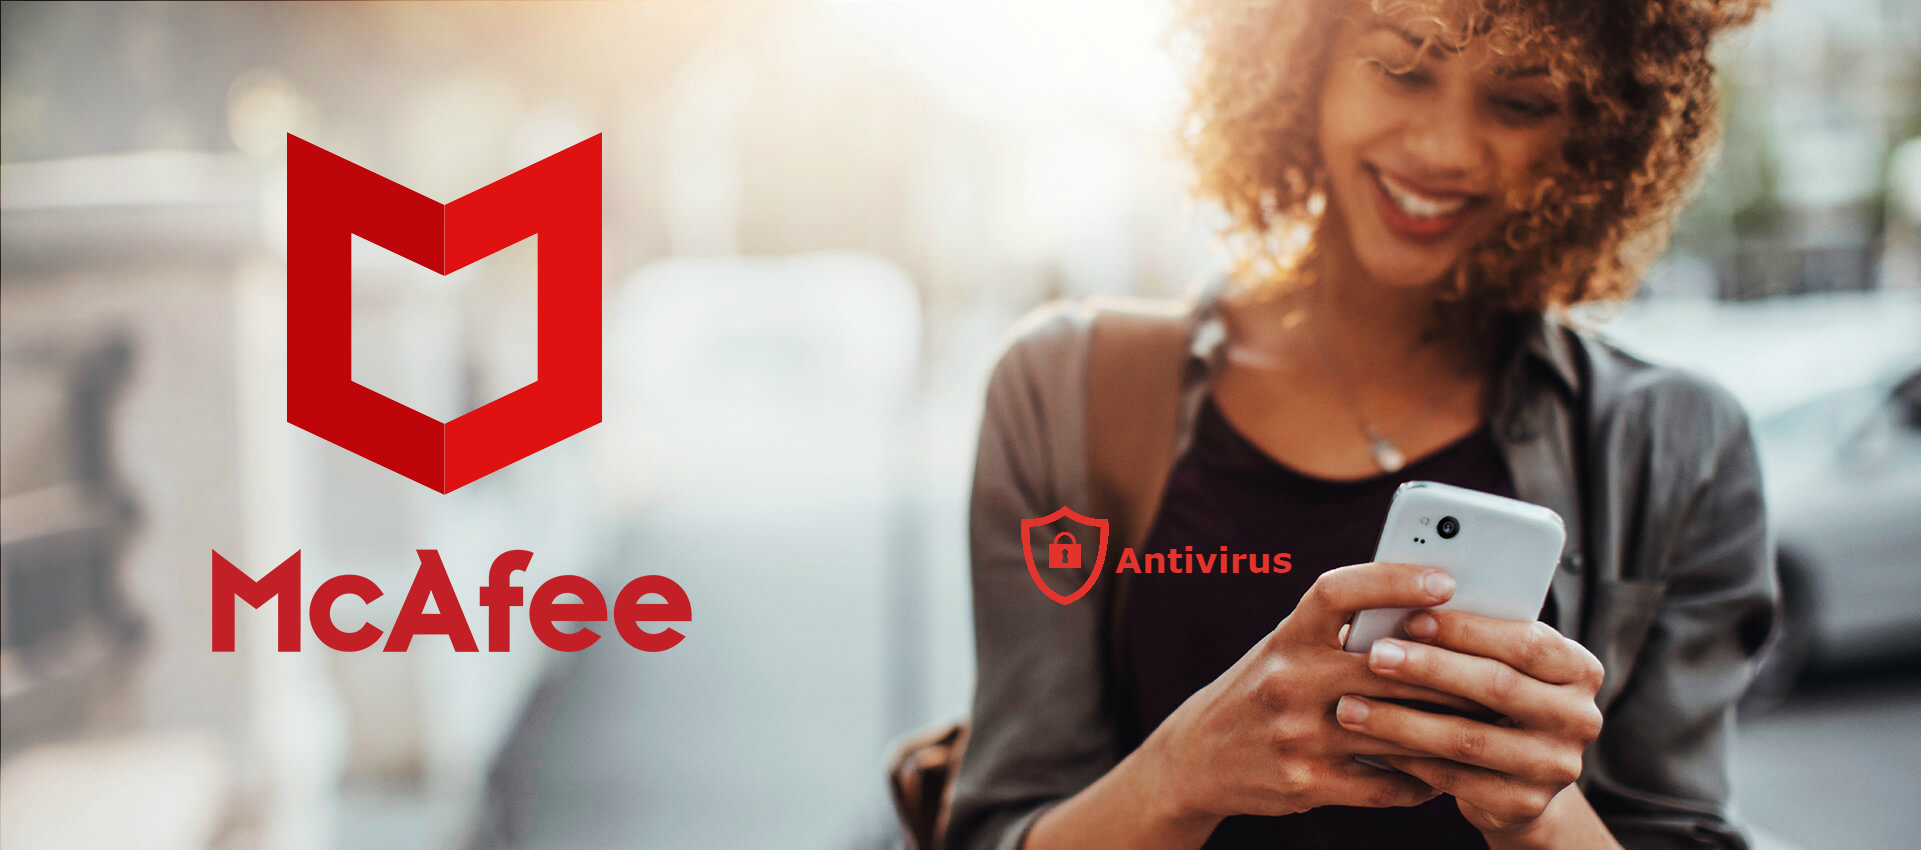 Mcafee.com/activate USA | Activate Mcafee with Product key